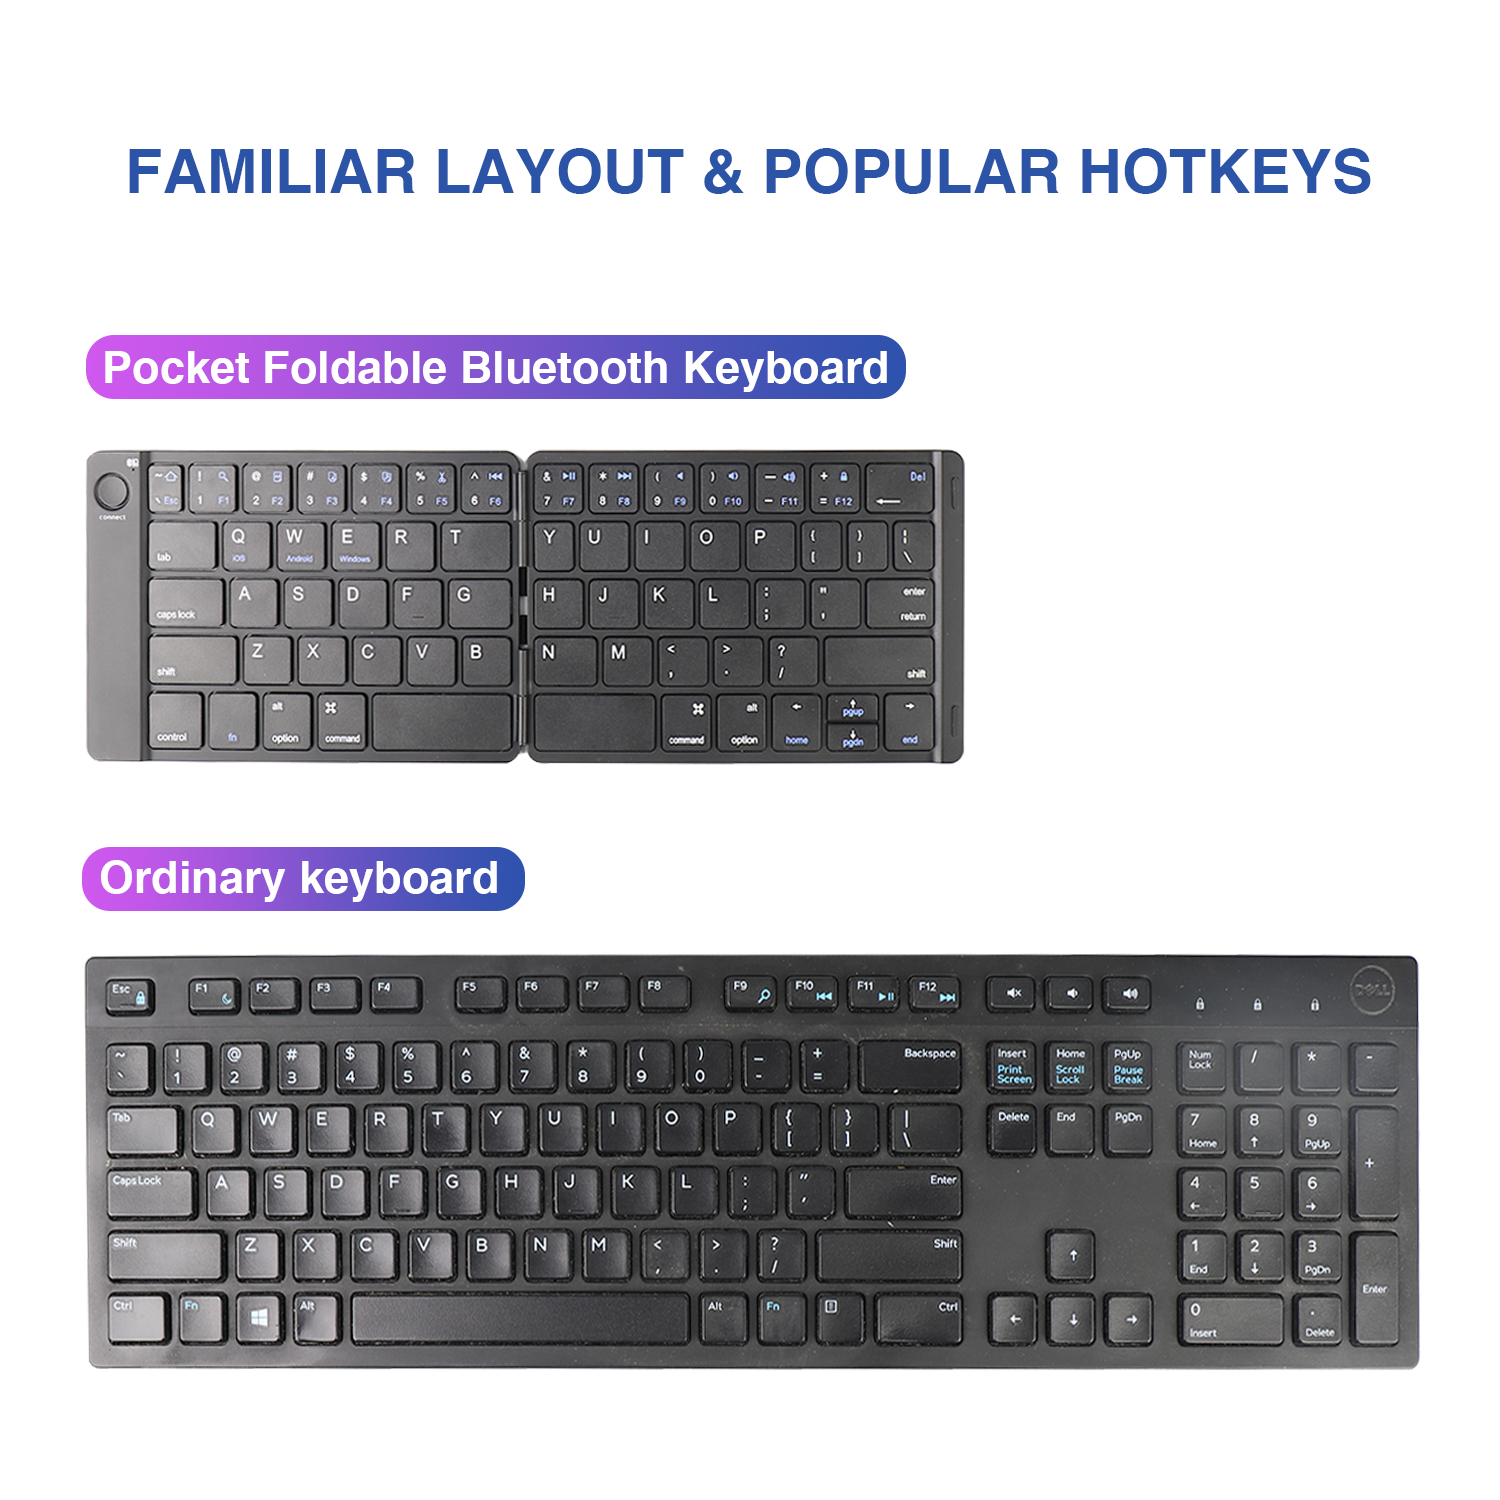 ET Mini Rechargeable Multifunctional Keyboard Pocket Foldable Keyboard Sync Up To 3 Devices For PC Mac Tablet Mobile Phone